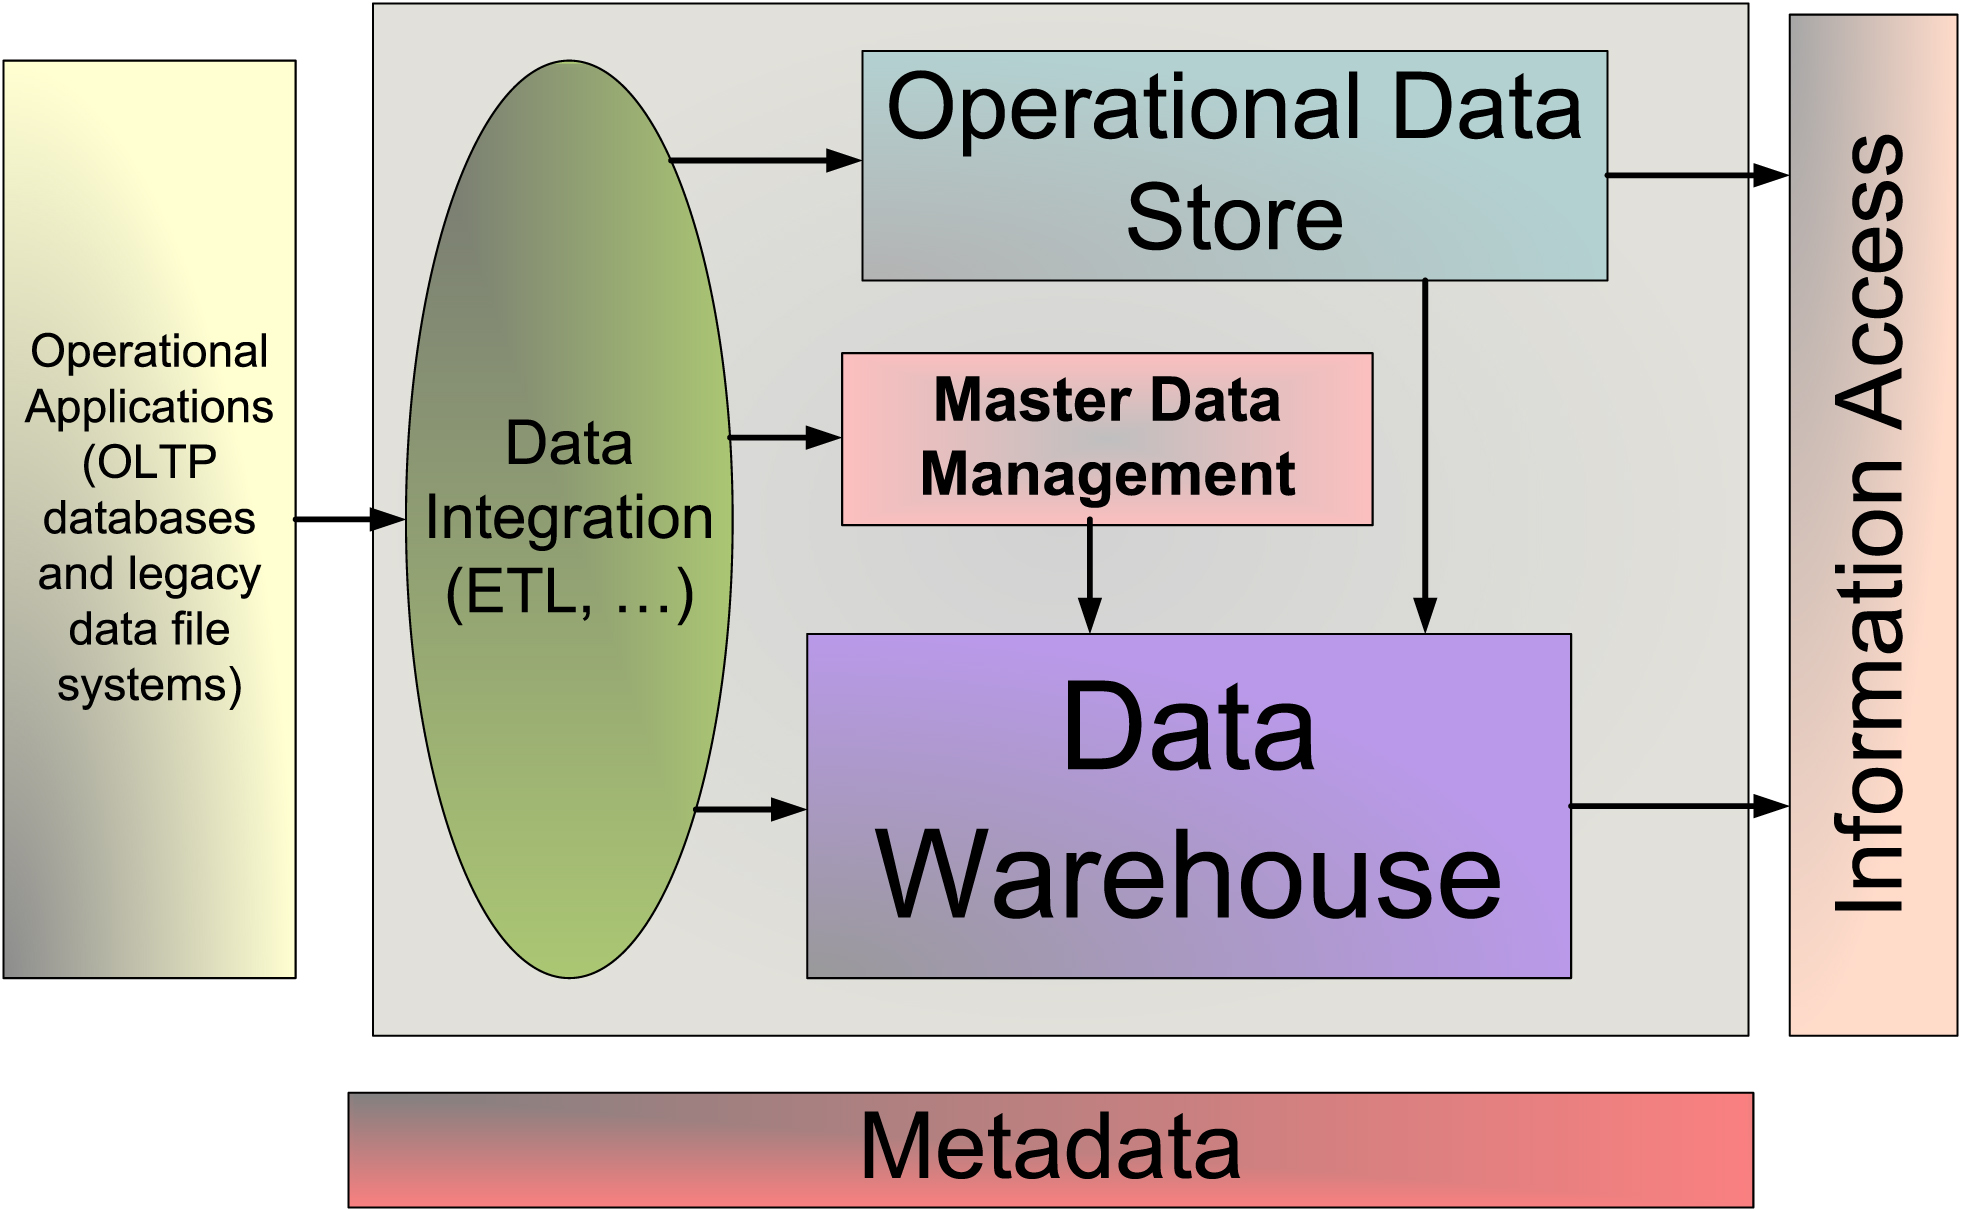 Information Management The Value Of An Enterprise Data Model Part. Click To Enlarge. Wiring. Relational Data Warehouse Architecture Diagram At Scoala.co